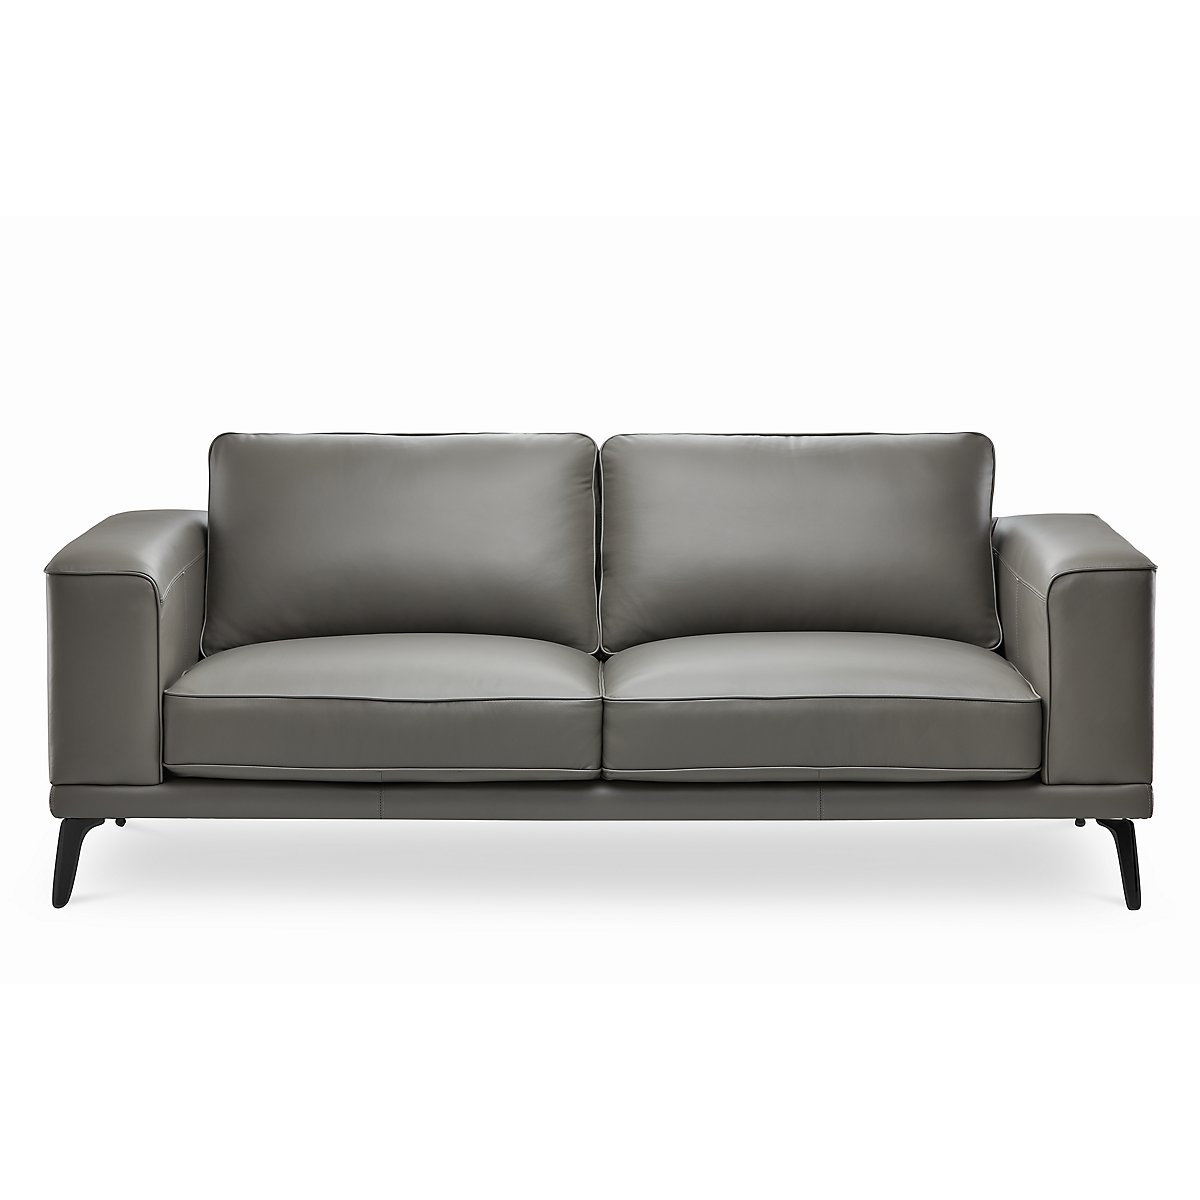 Naples Gray Leather Sofa With Black Legs | Living Room - Sofas | City Furniture